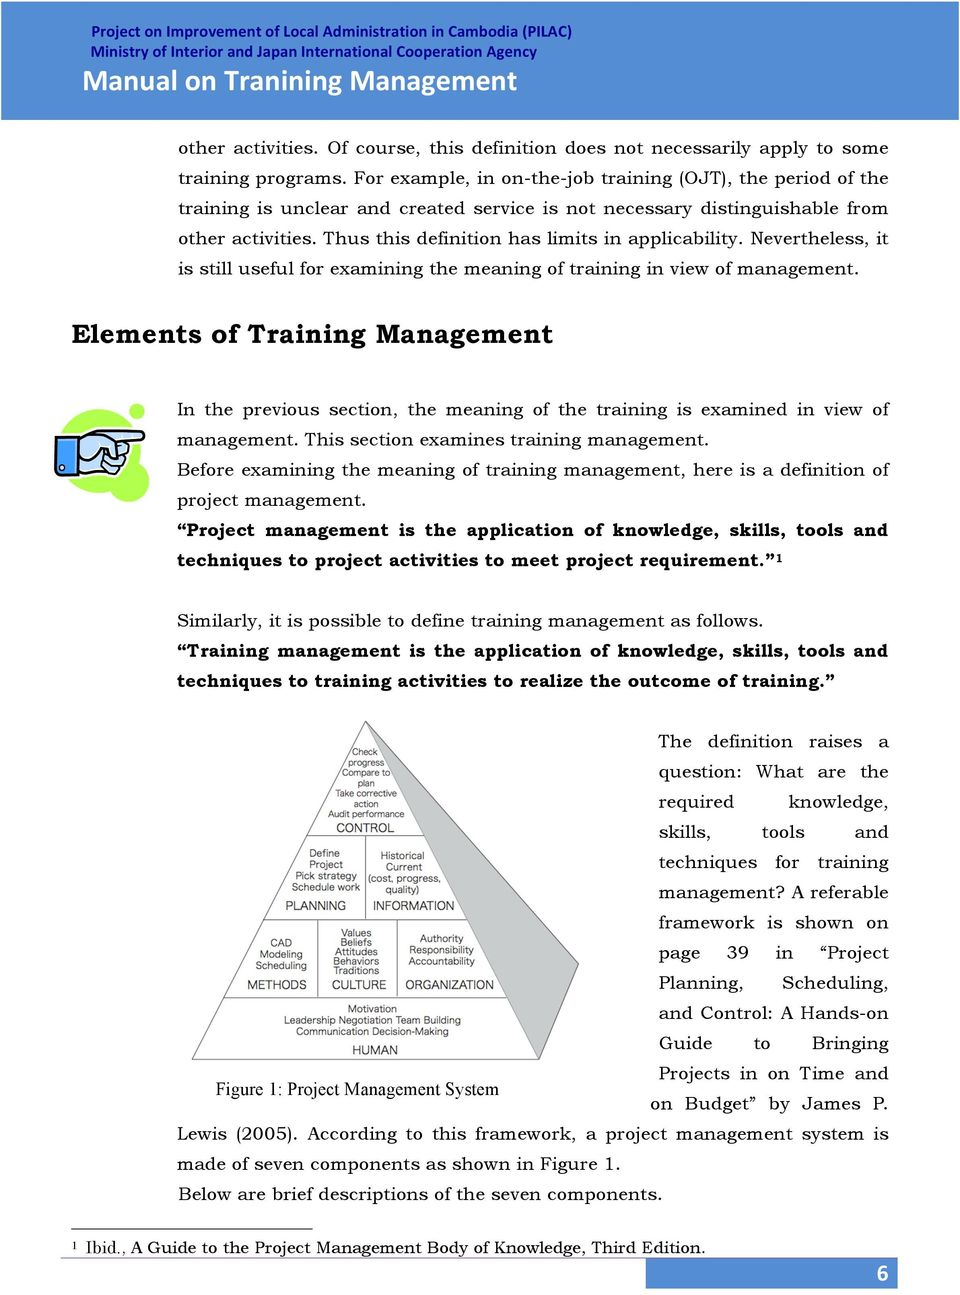 Thus this definition has limits in applicability. Nevertheless, it is still useful for examining the meaning of training in view of management.